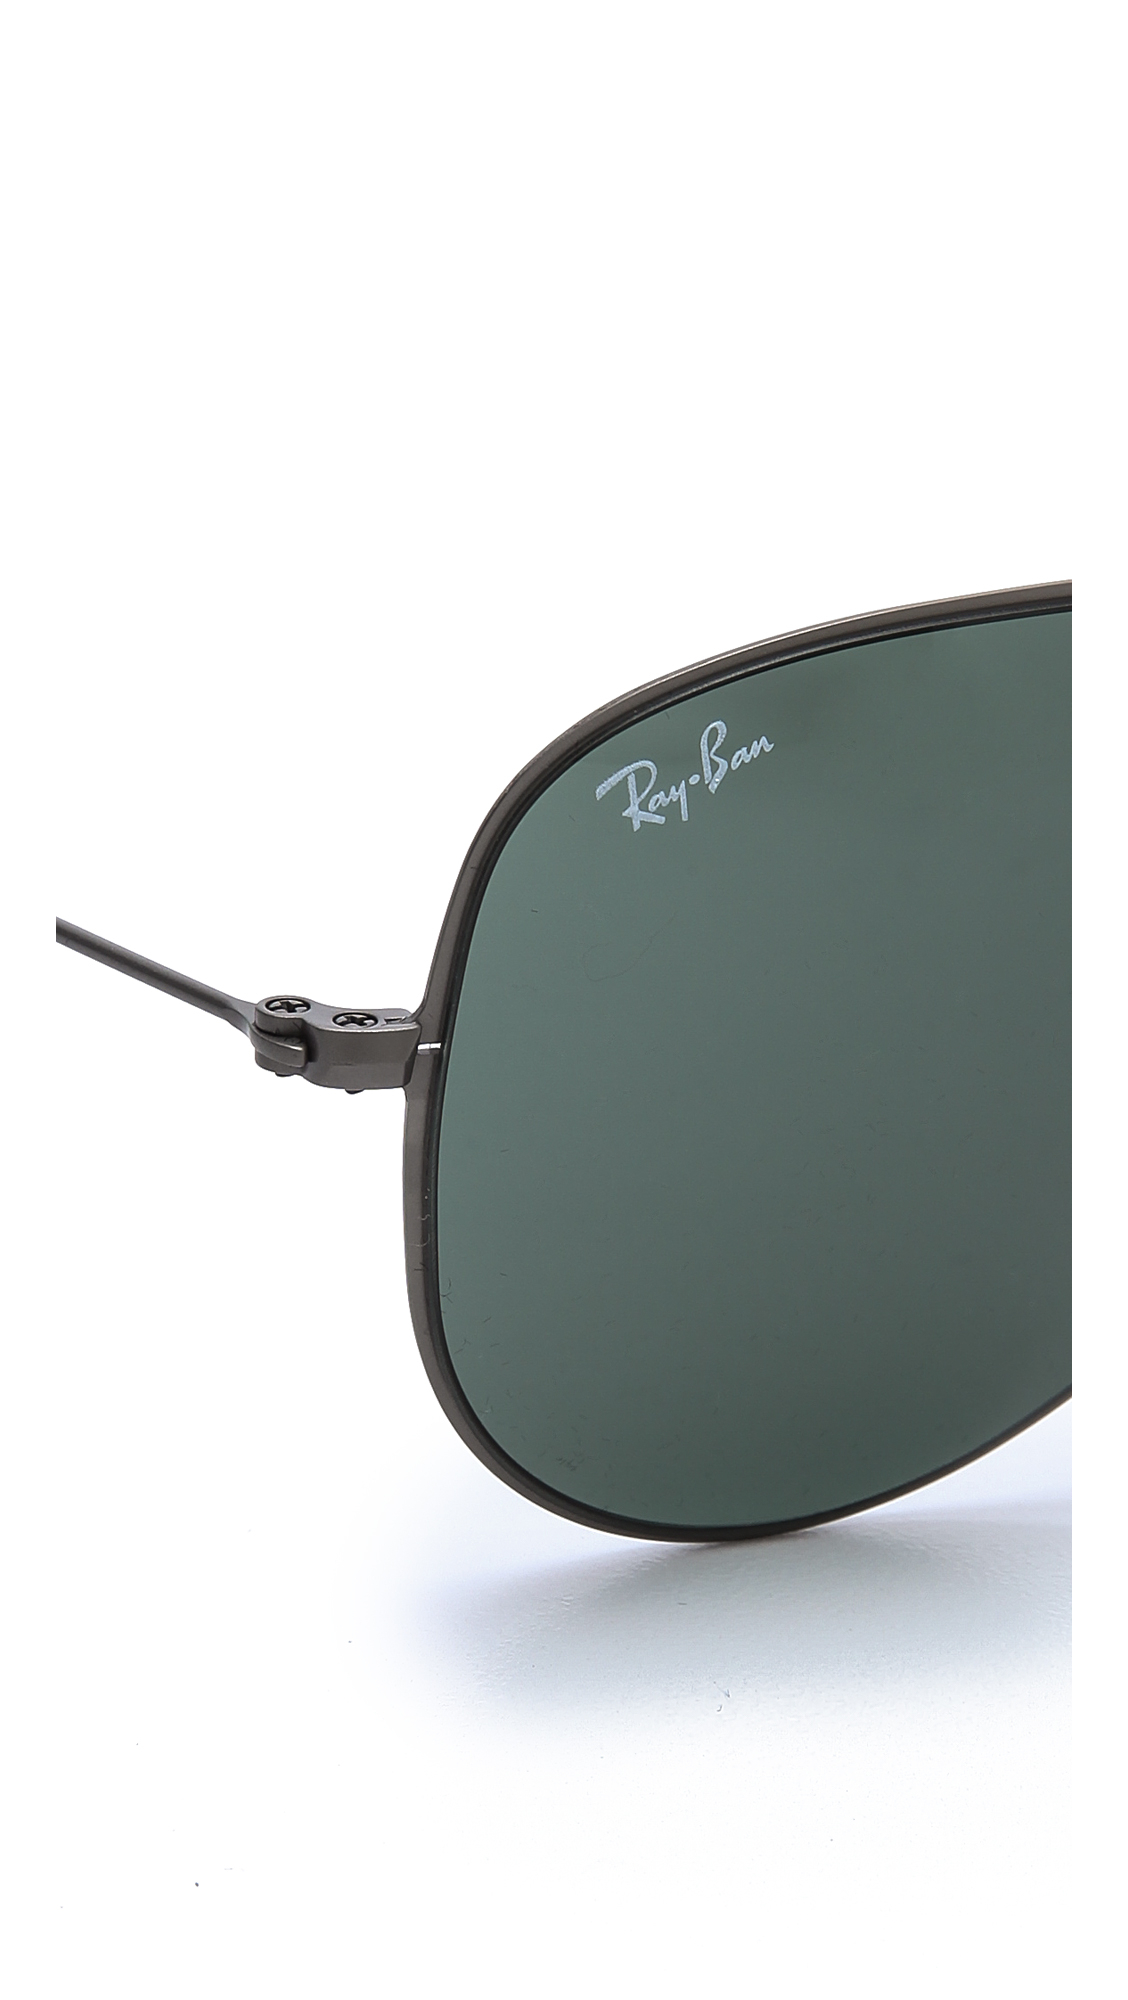 aa60757005 Ray Ban Sunglasses Sports Authority « Heritage Malta